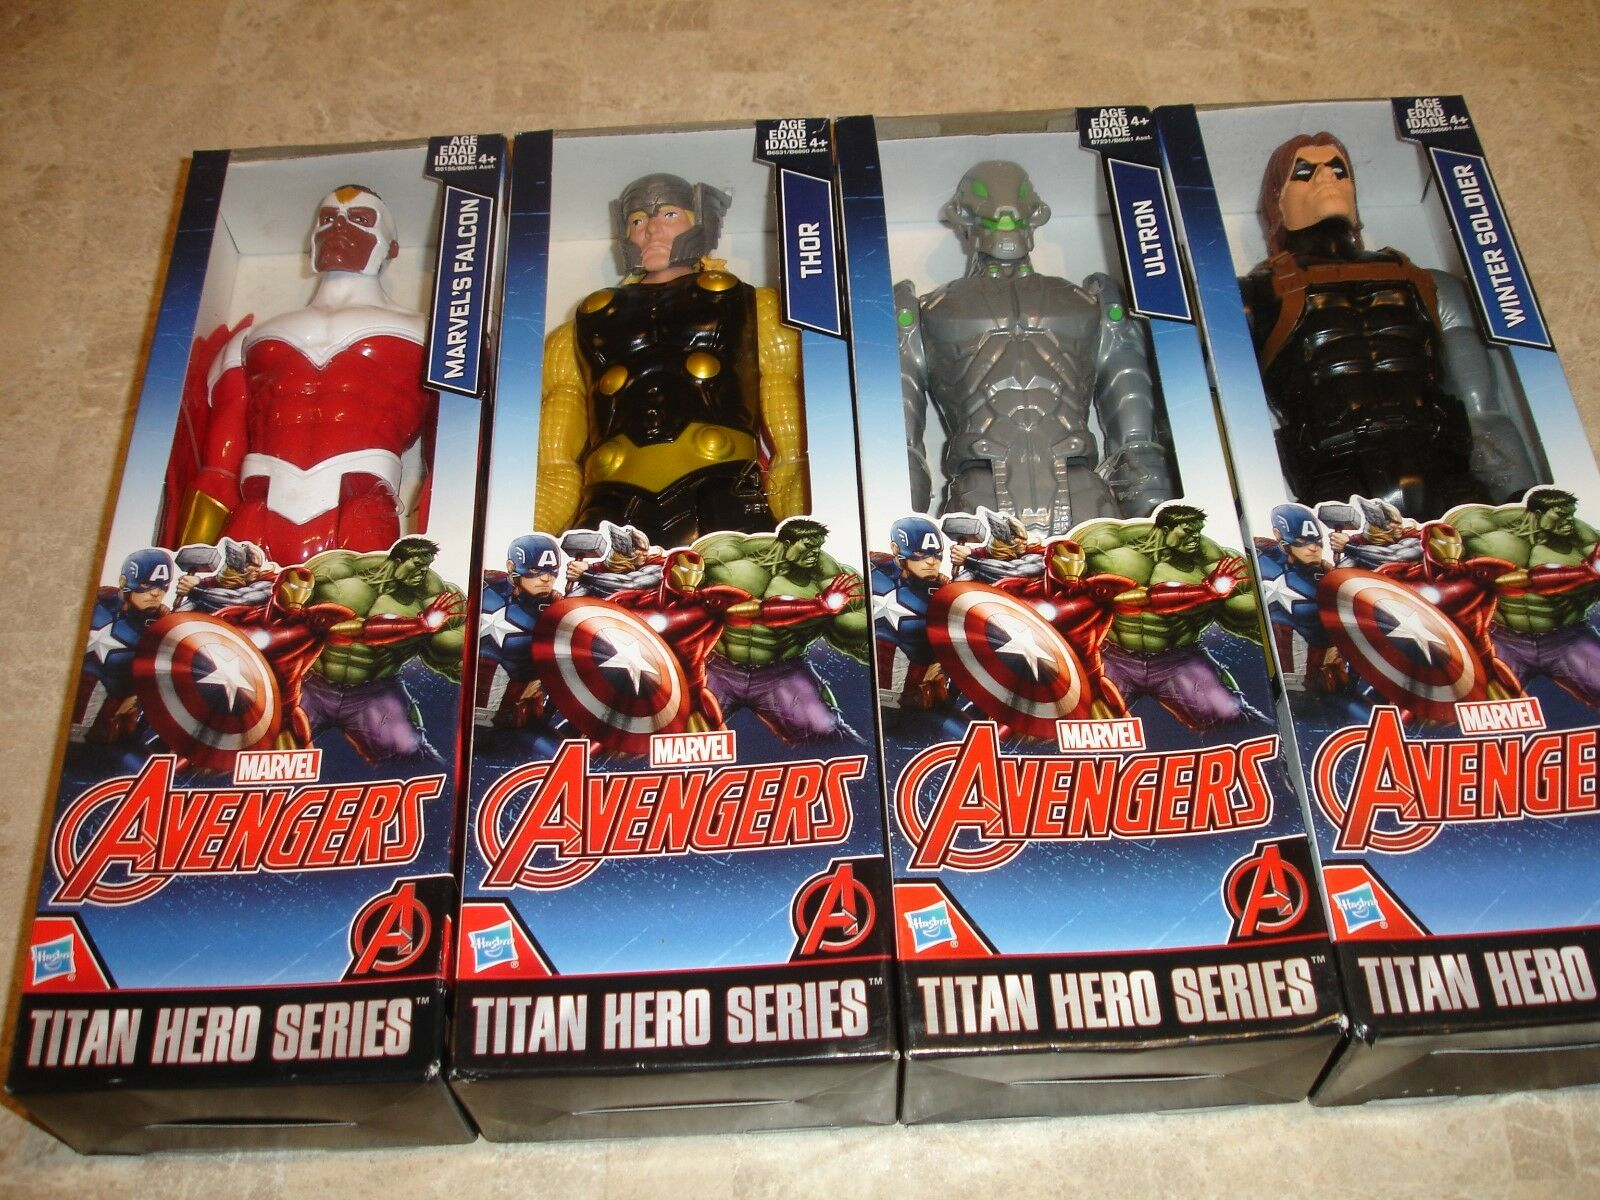 Marvel avengers - titan held serie - hasbro action - figuren